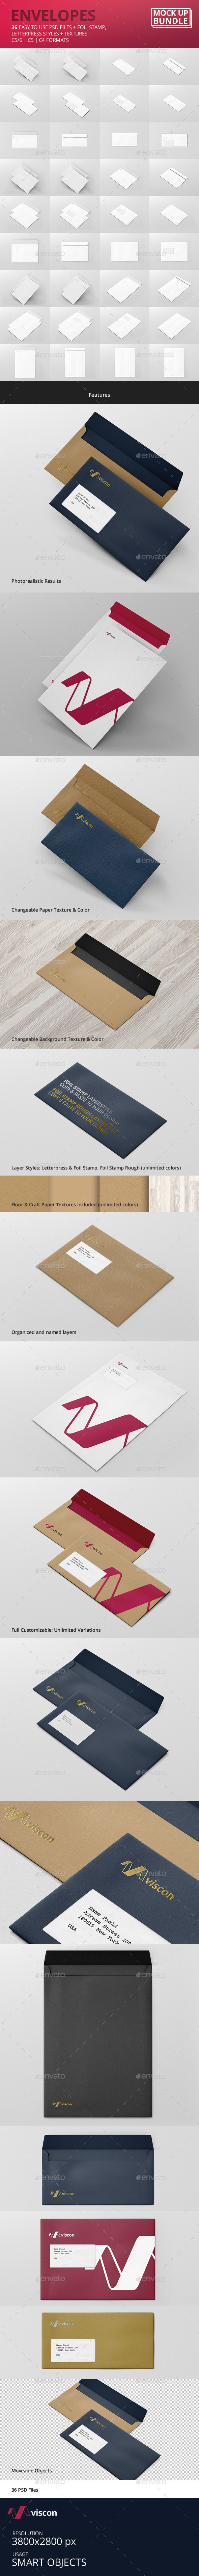 GraphicRiver Envelopes Mock-Up Bundle 11625876